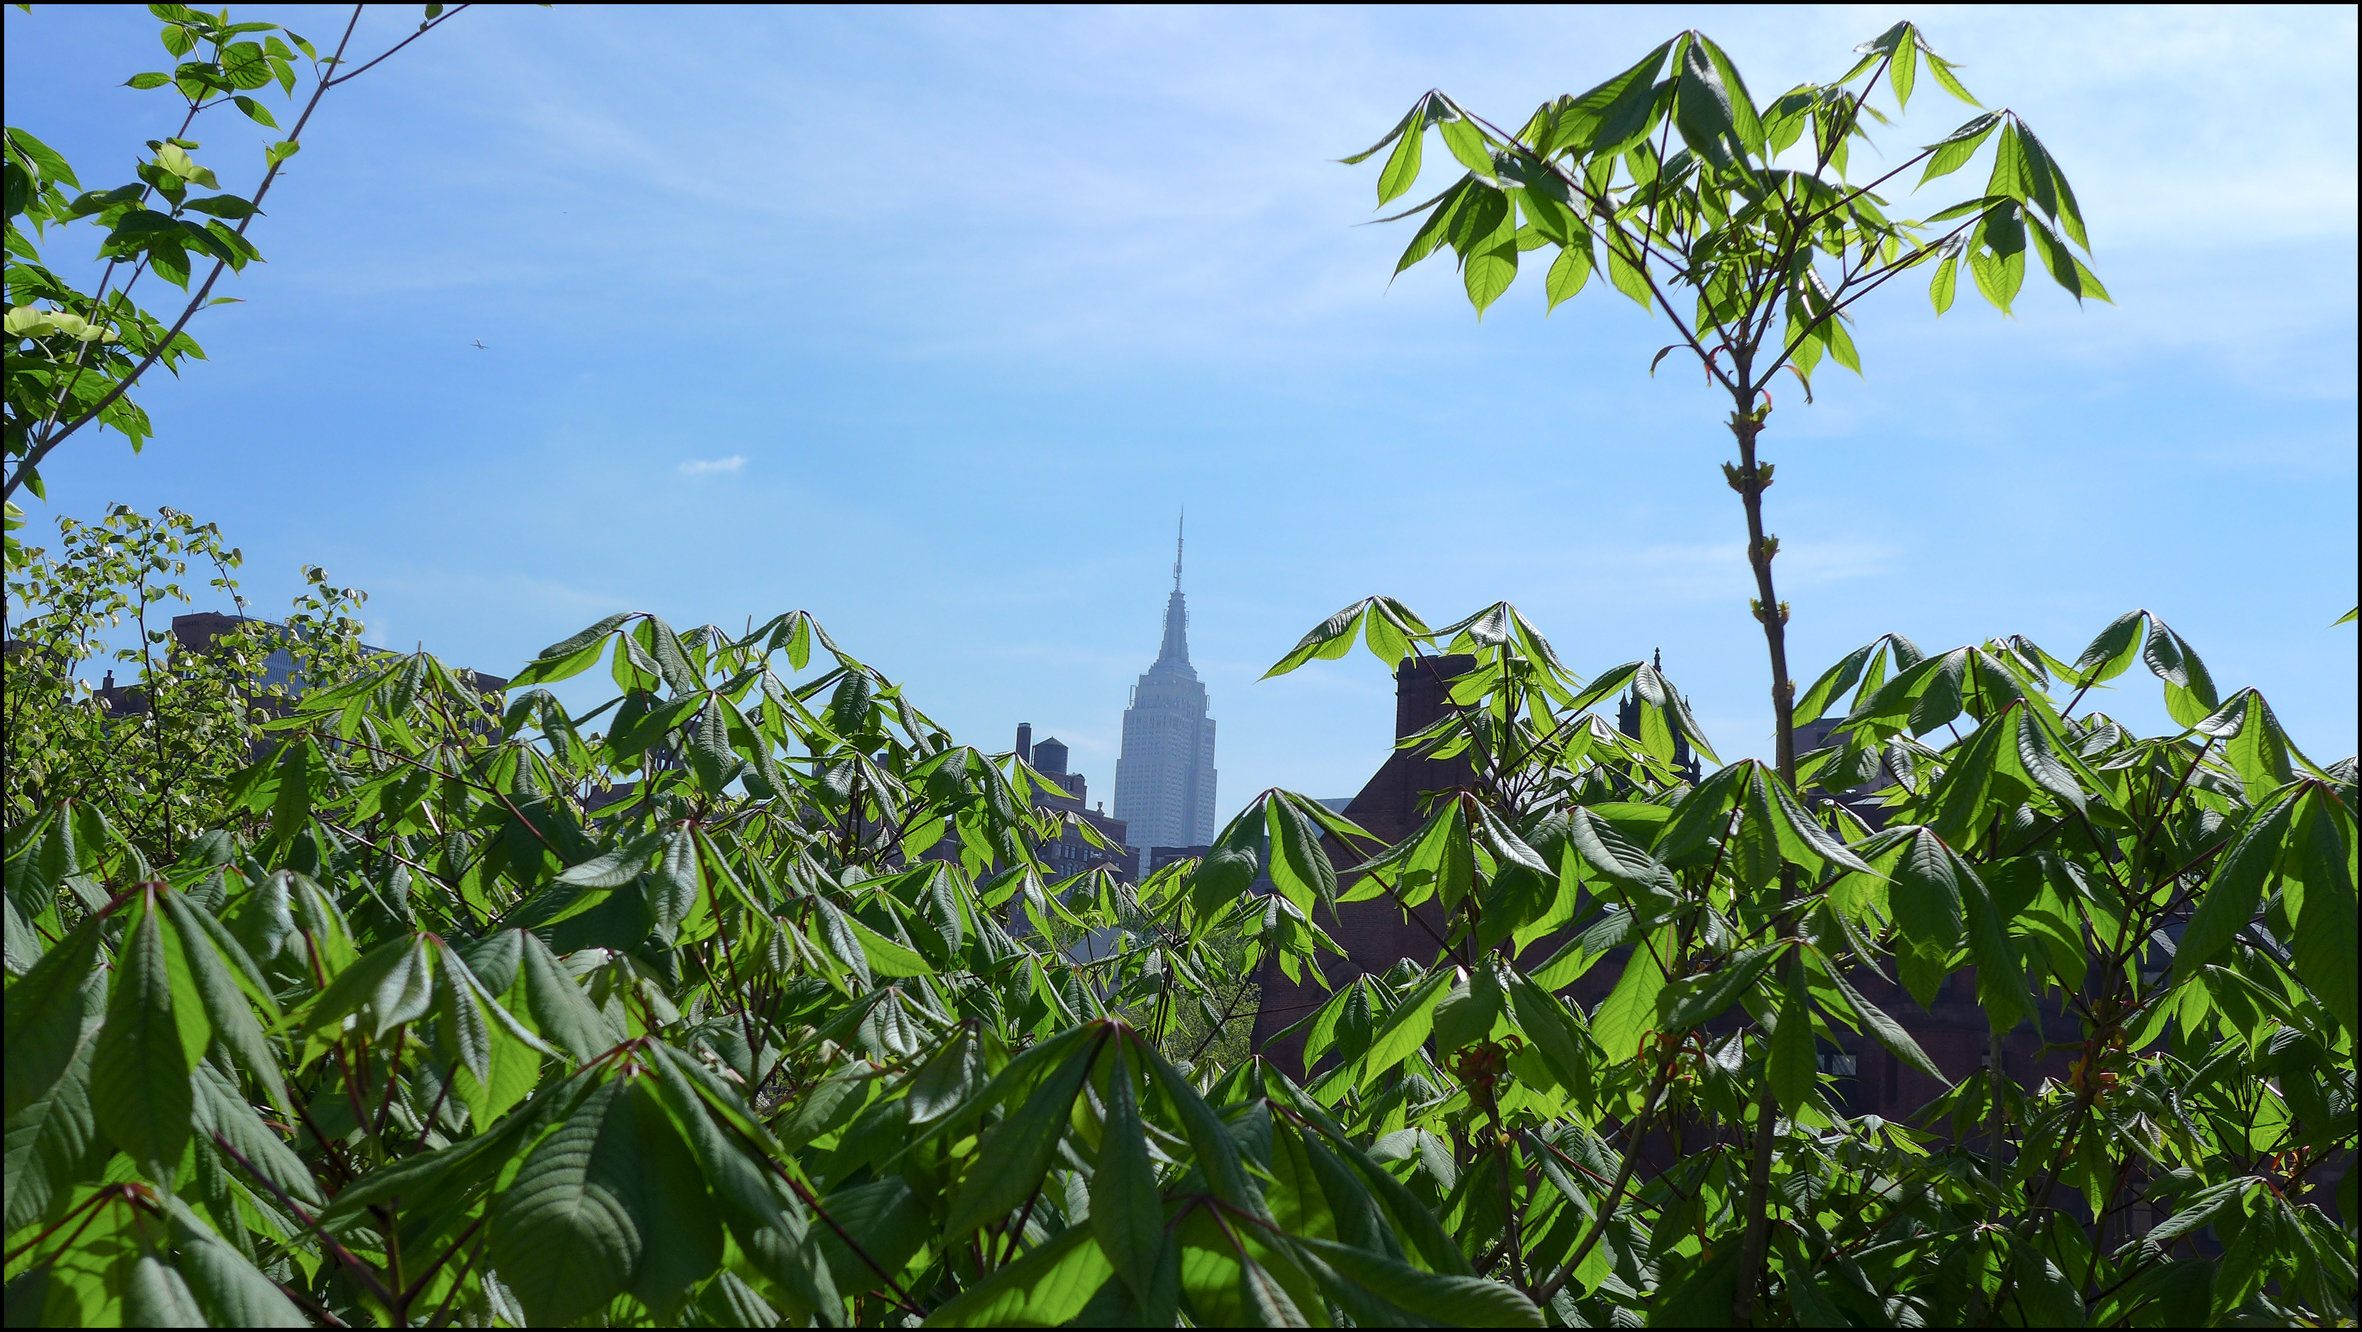 The Empire State building, 2013